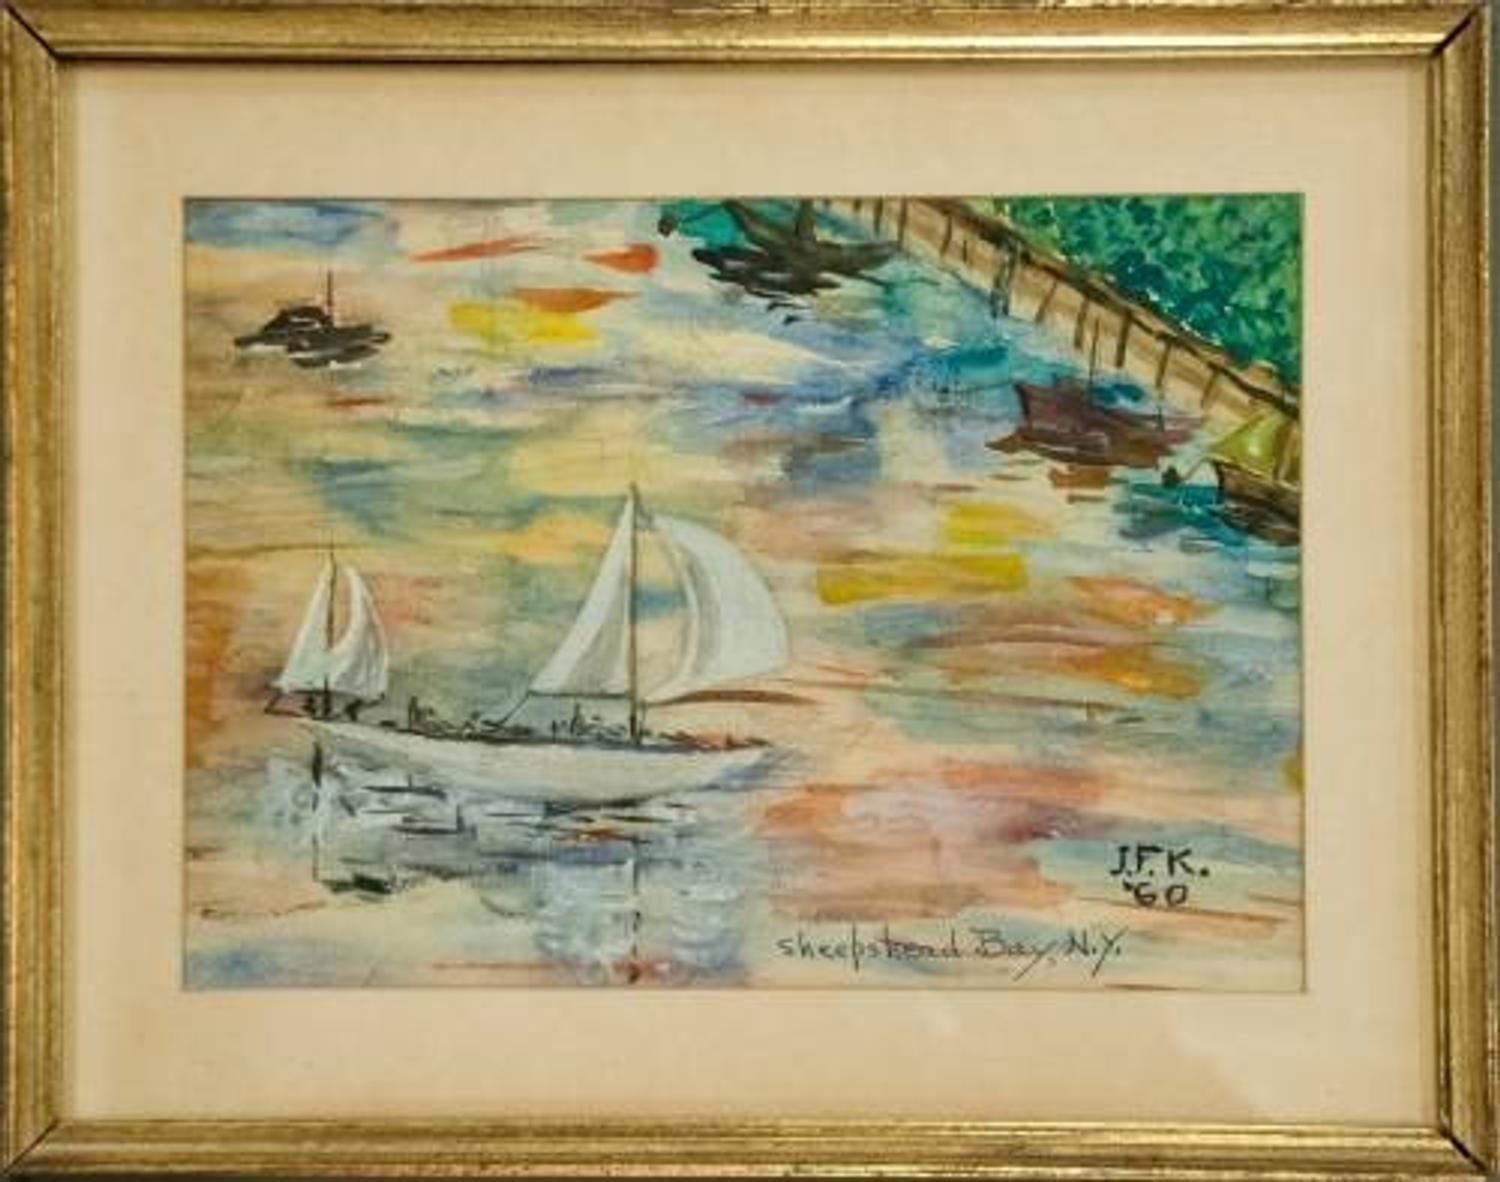 Book Cover Watercolor Florida : Two original watercolor paintings by john f kennedy done